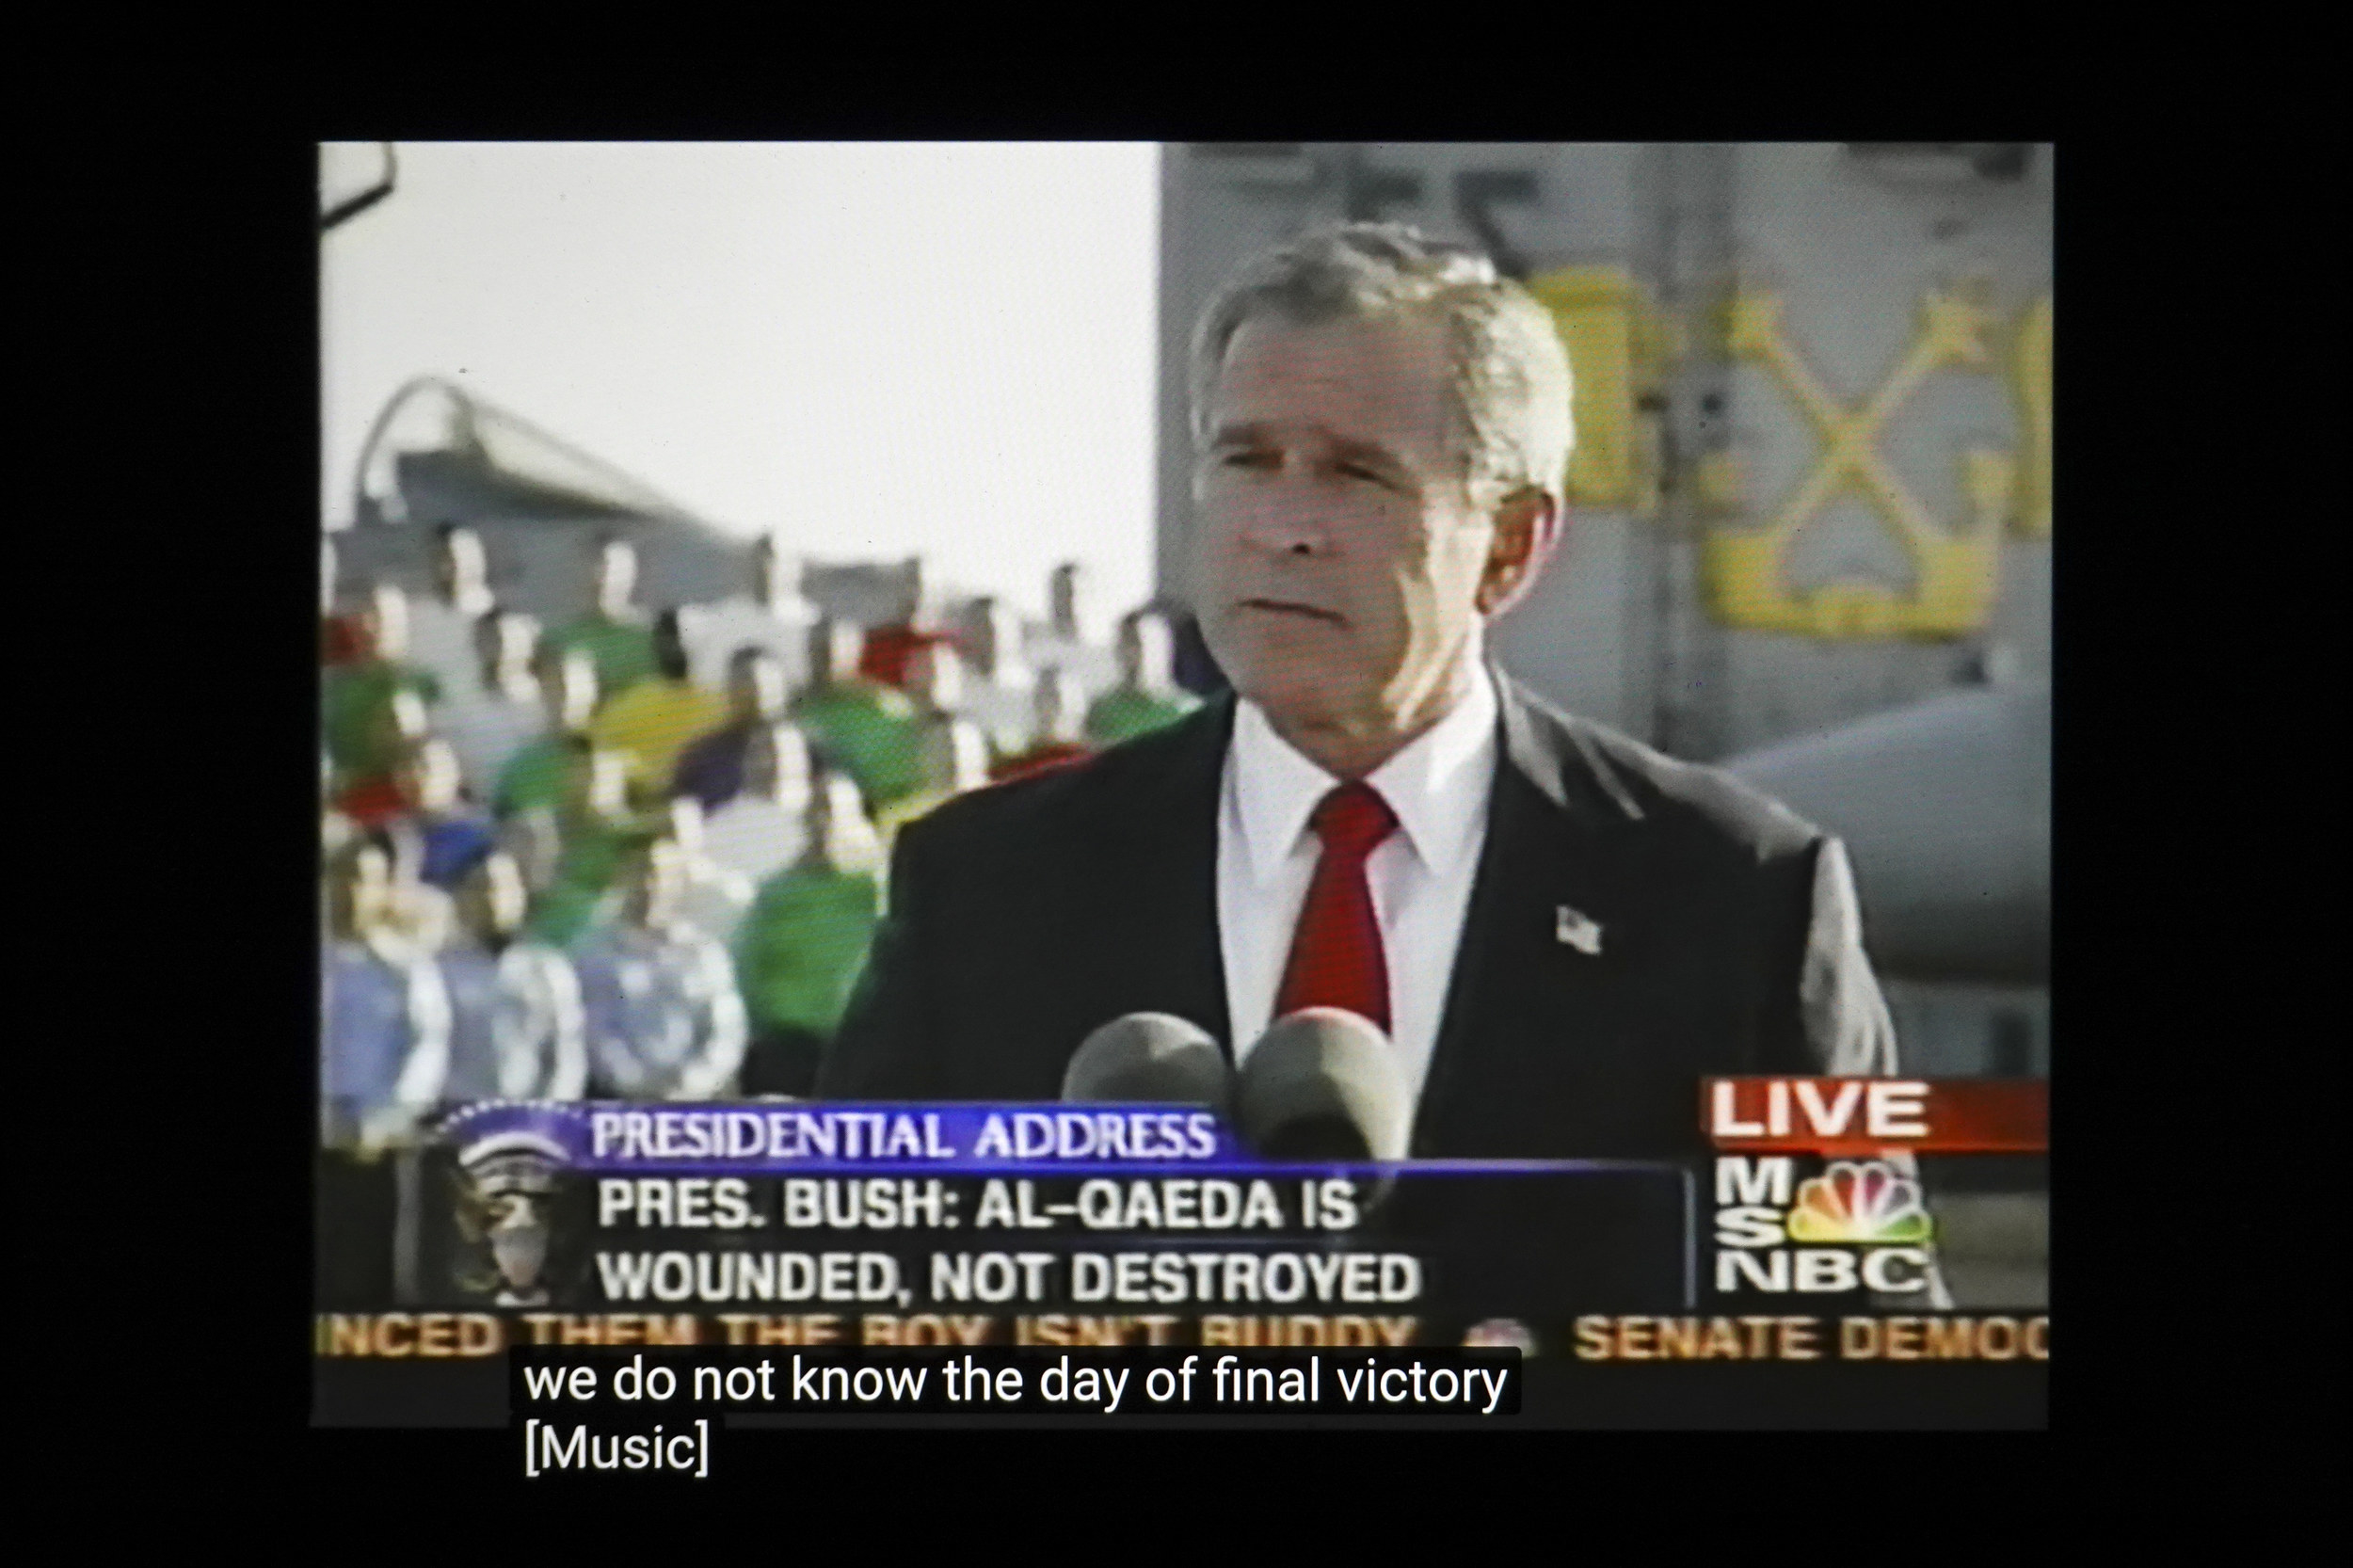 George Bush making an announcement on MSNBC